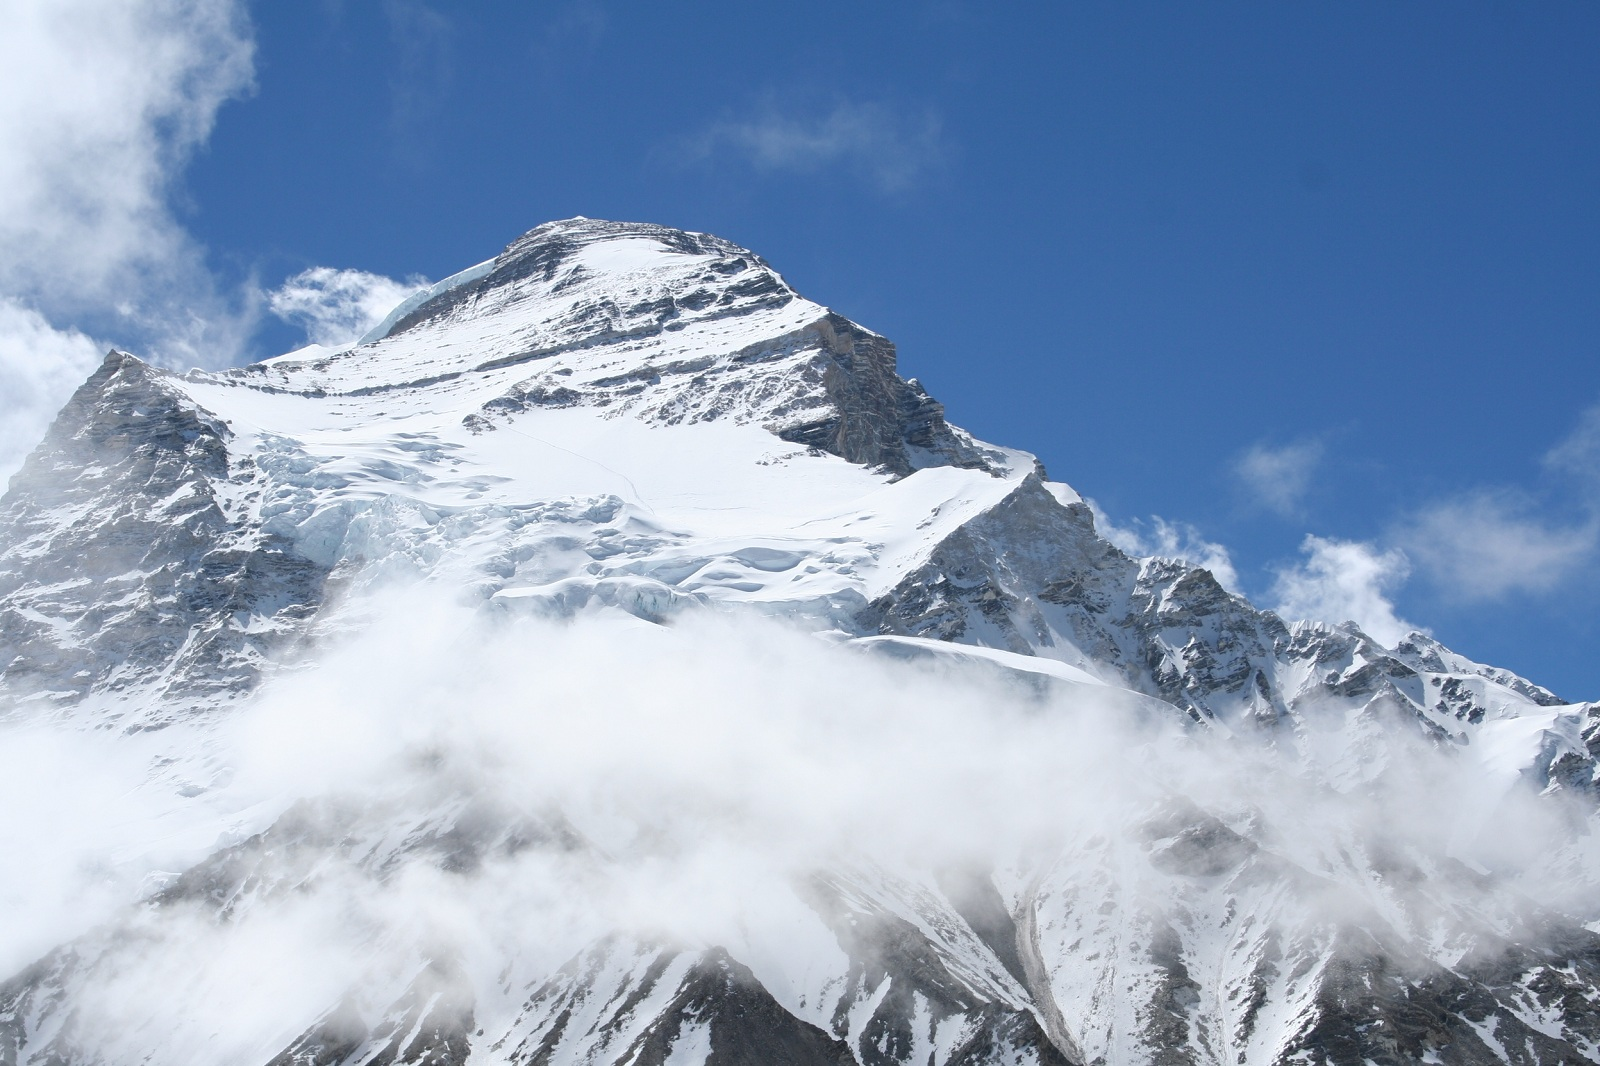 Tallest Mountains, Cho Oyu, Himalayas, Cloudy peak